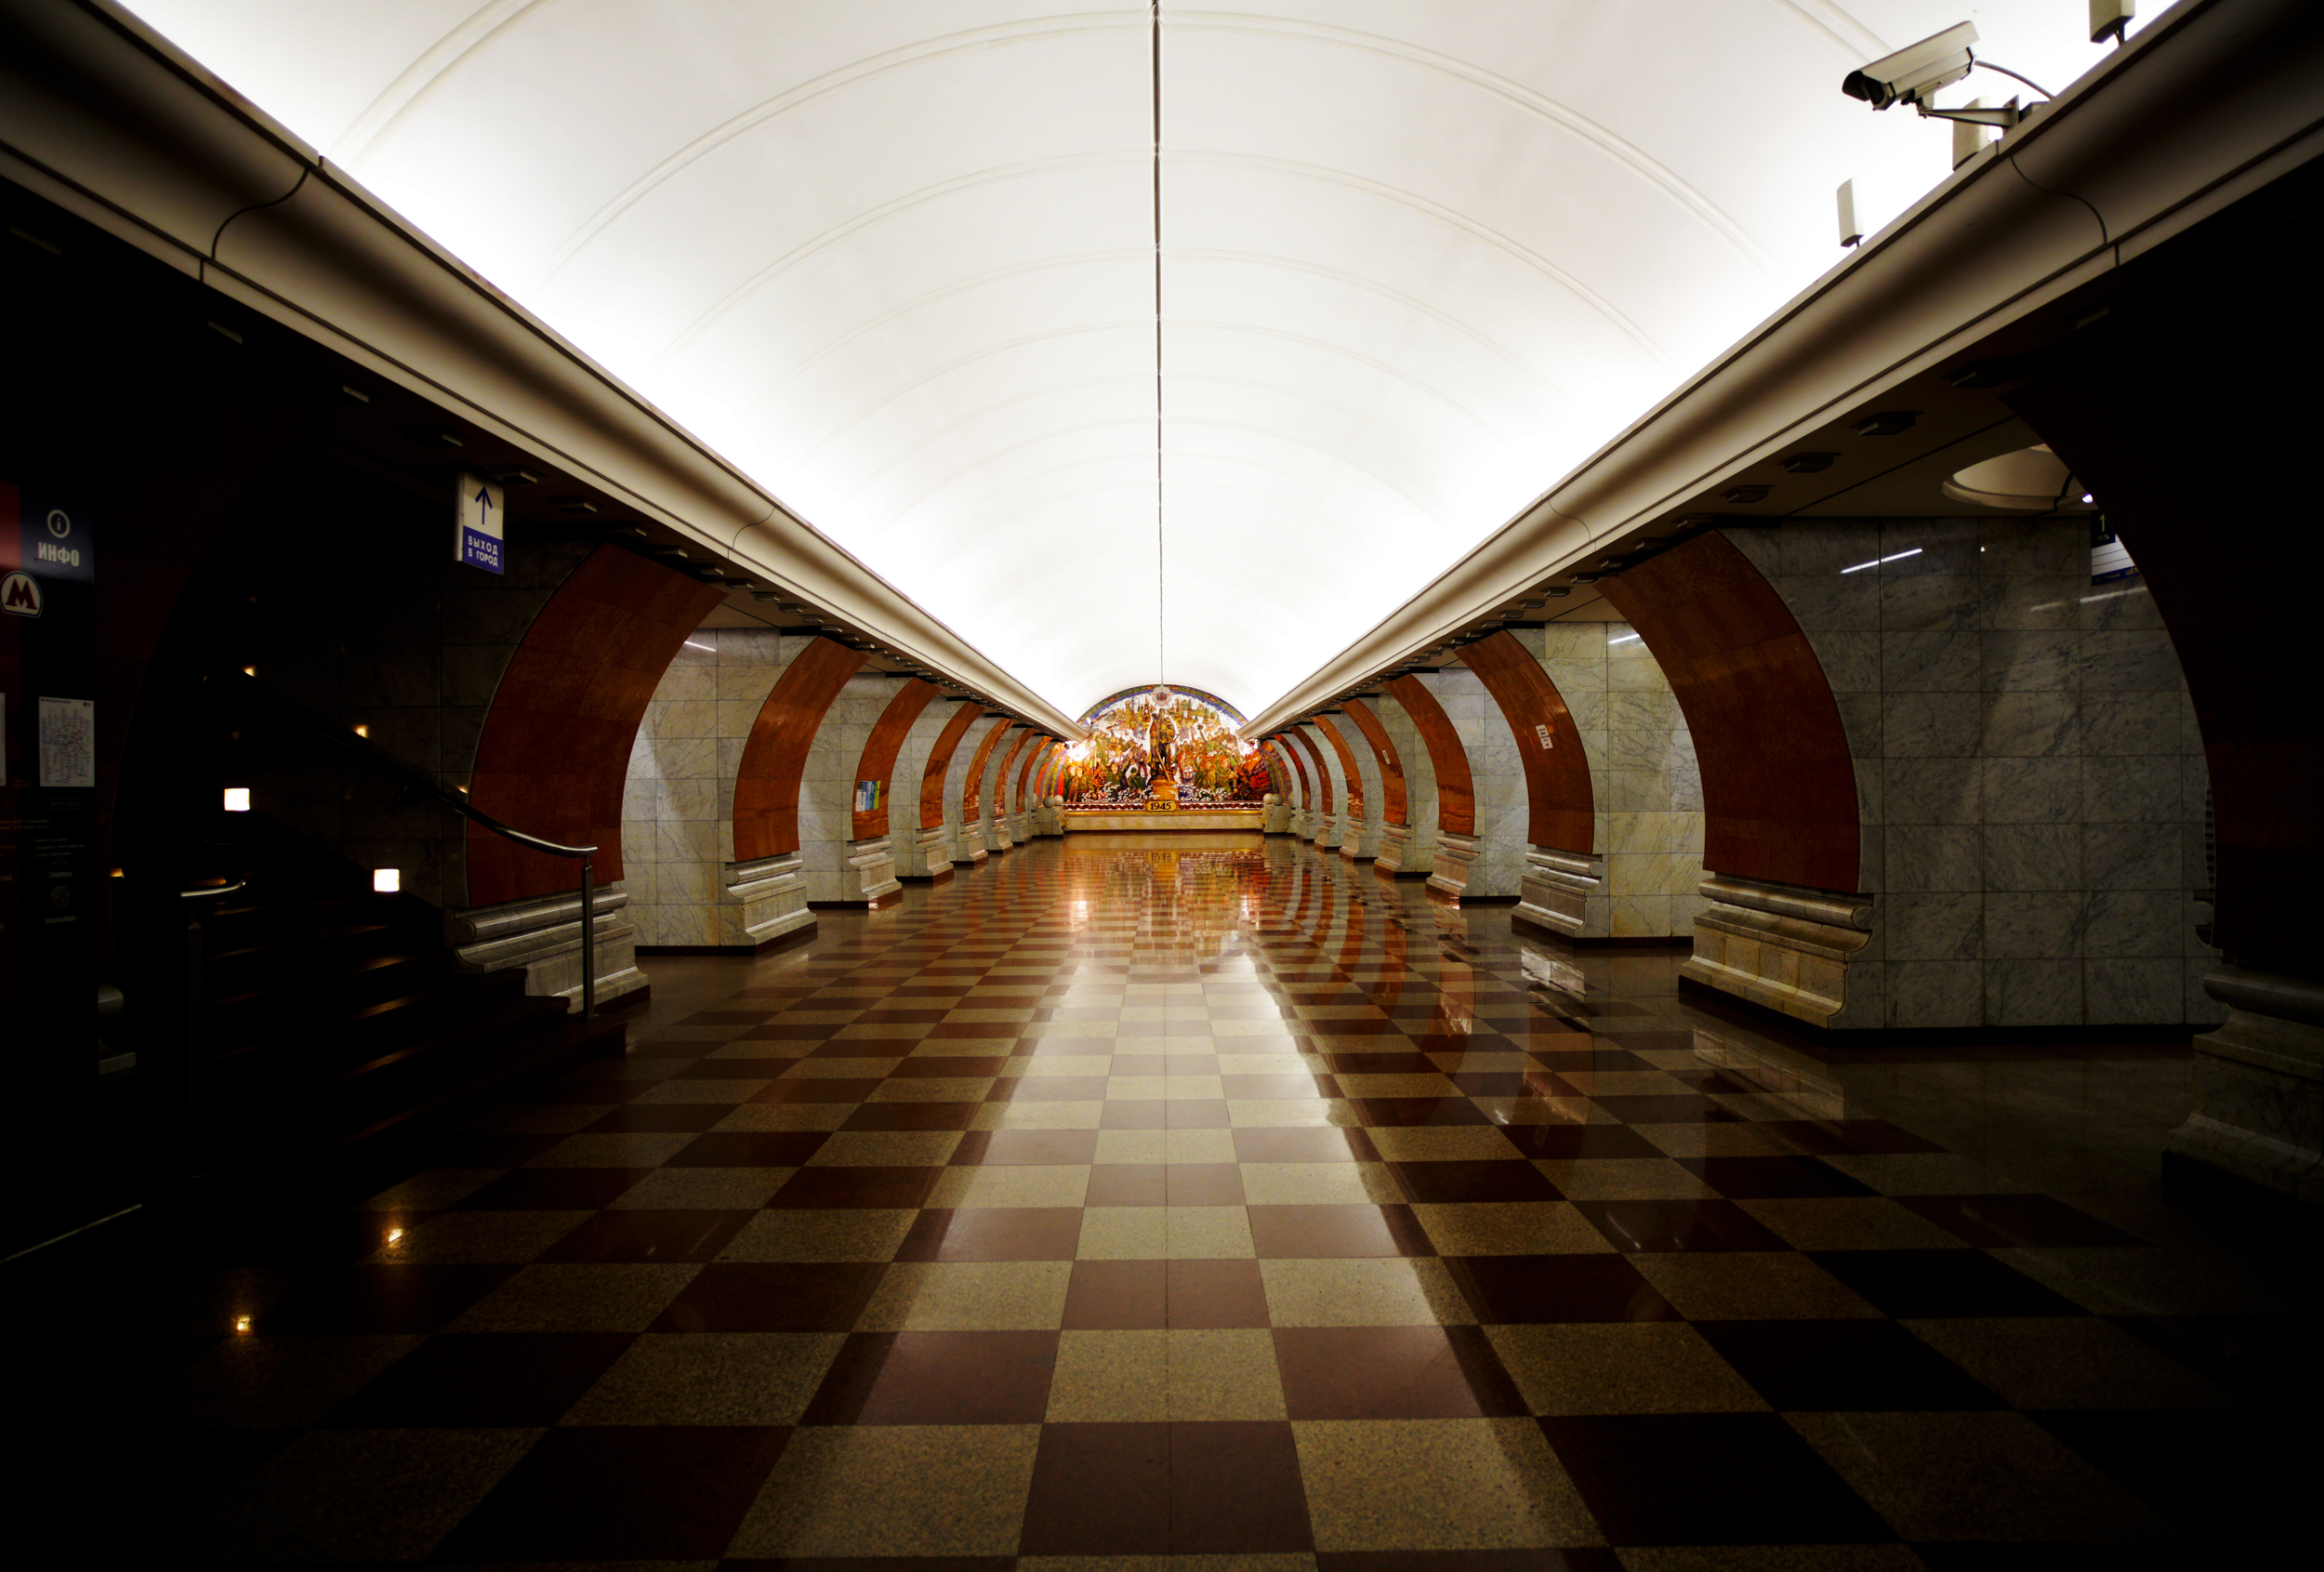 Moscow Train Station.jpg